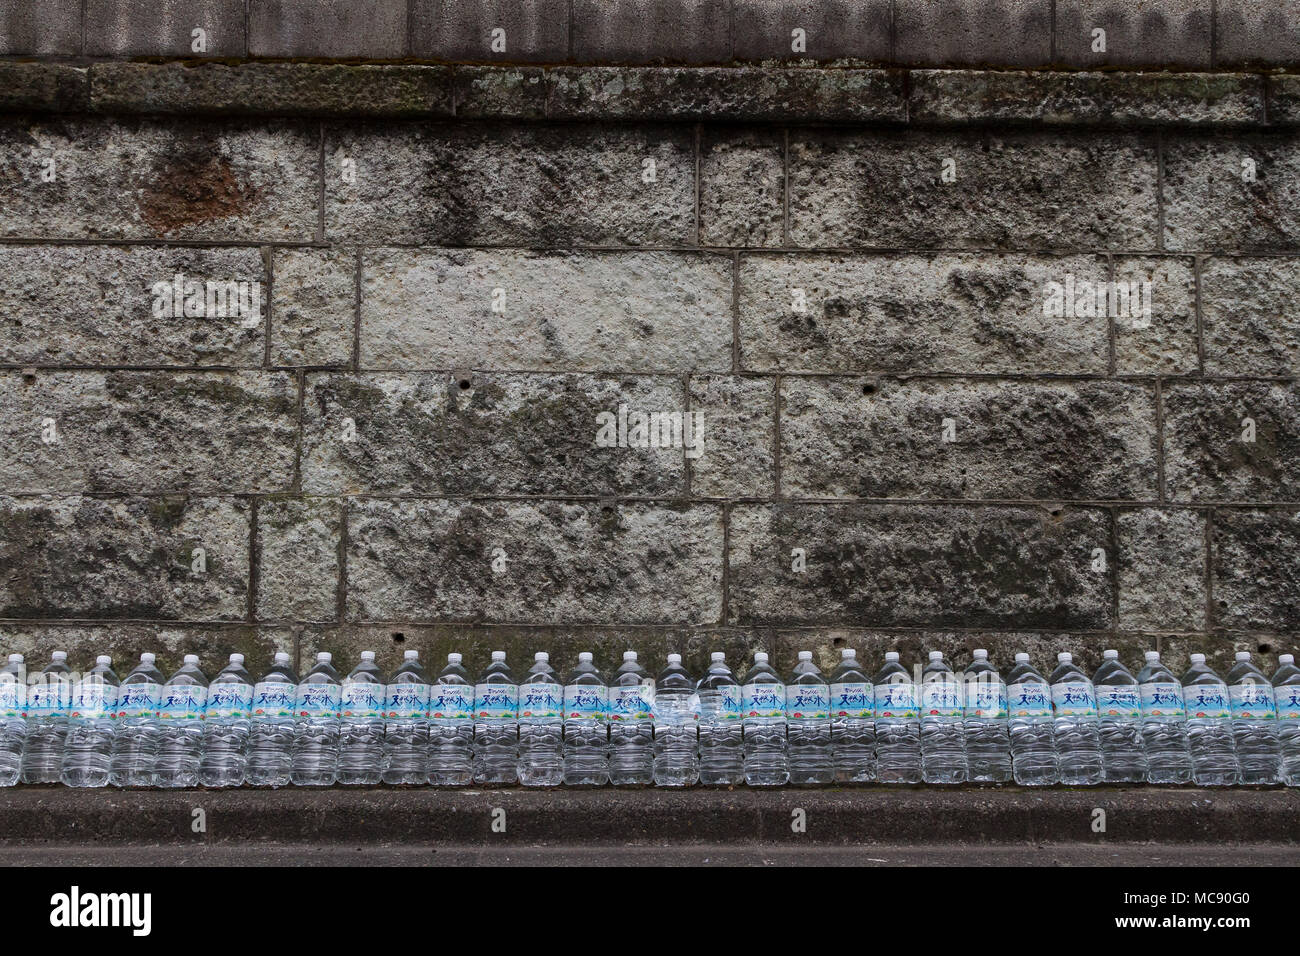 Water bottles lined up against a wall in a effort to keep cats away from the area. Sengoku, Tokyo, Japan. Friday March 23rd 2018 - Stock Image